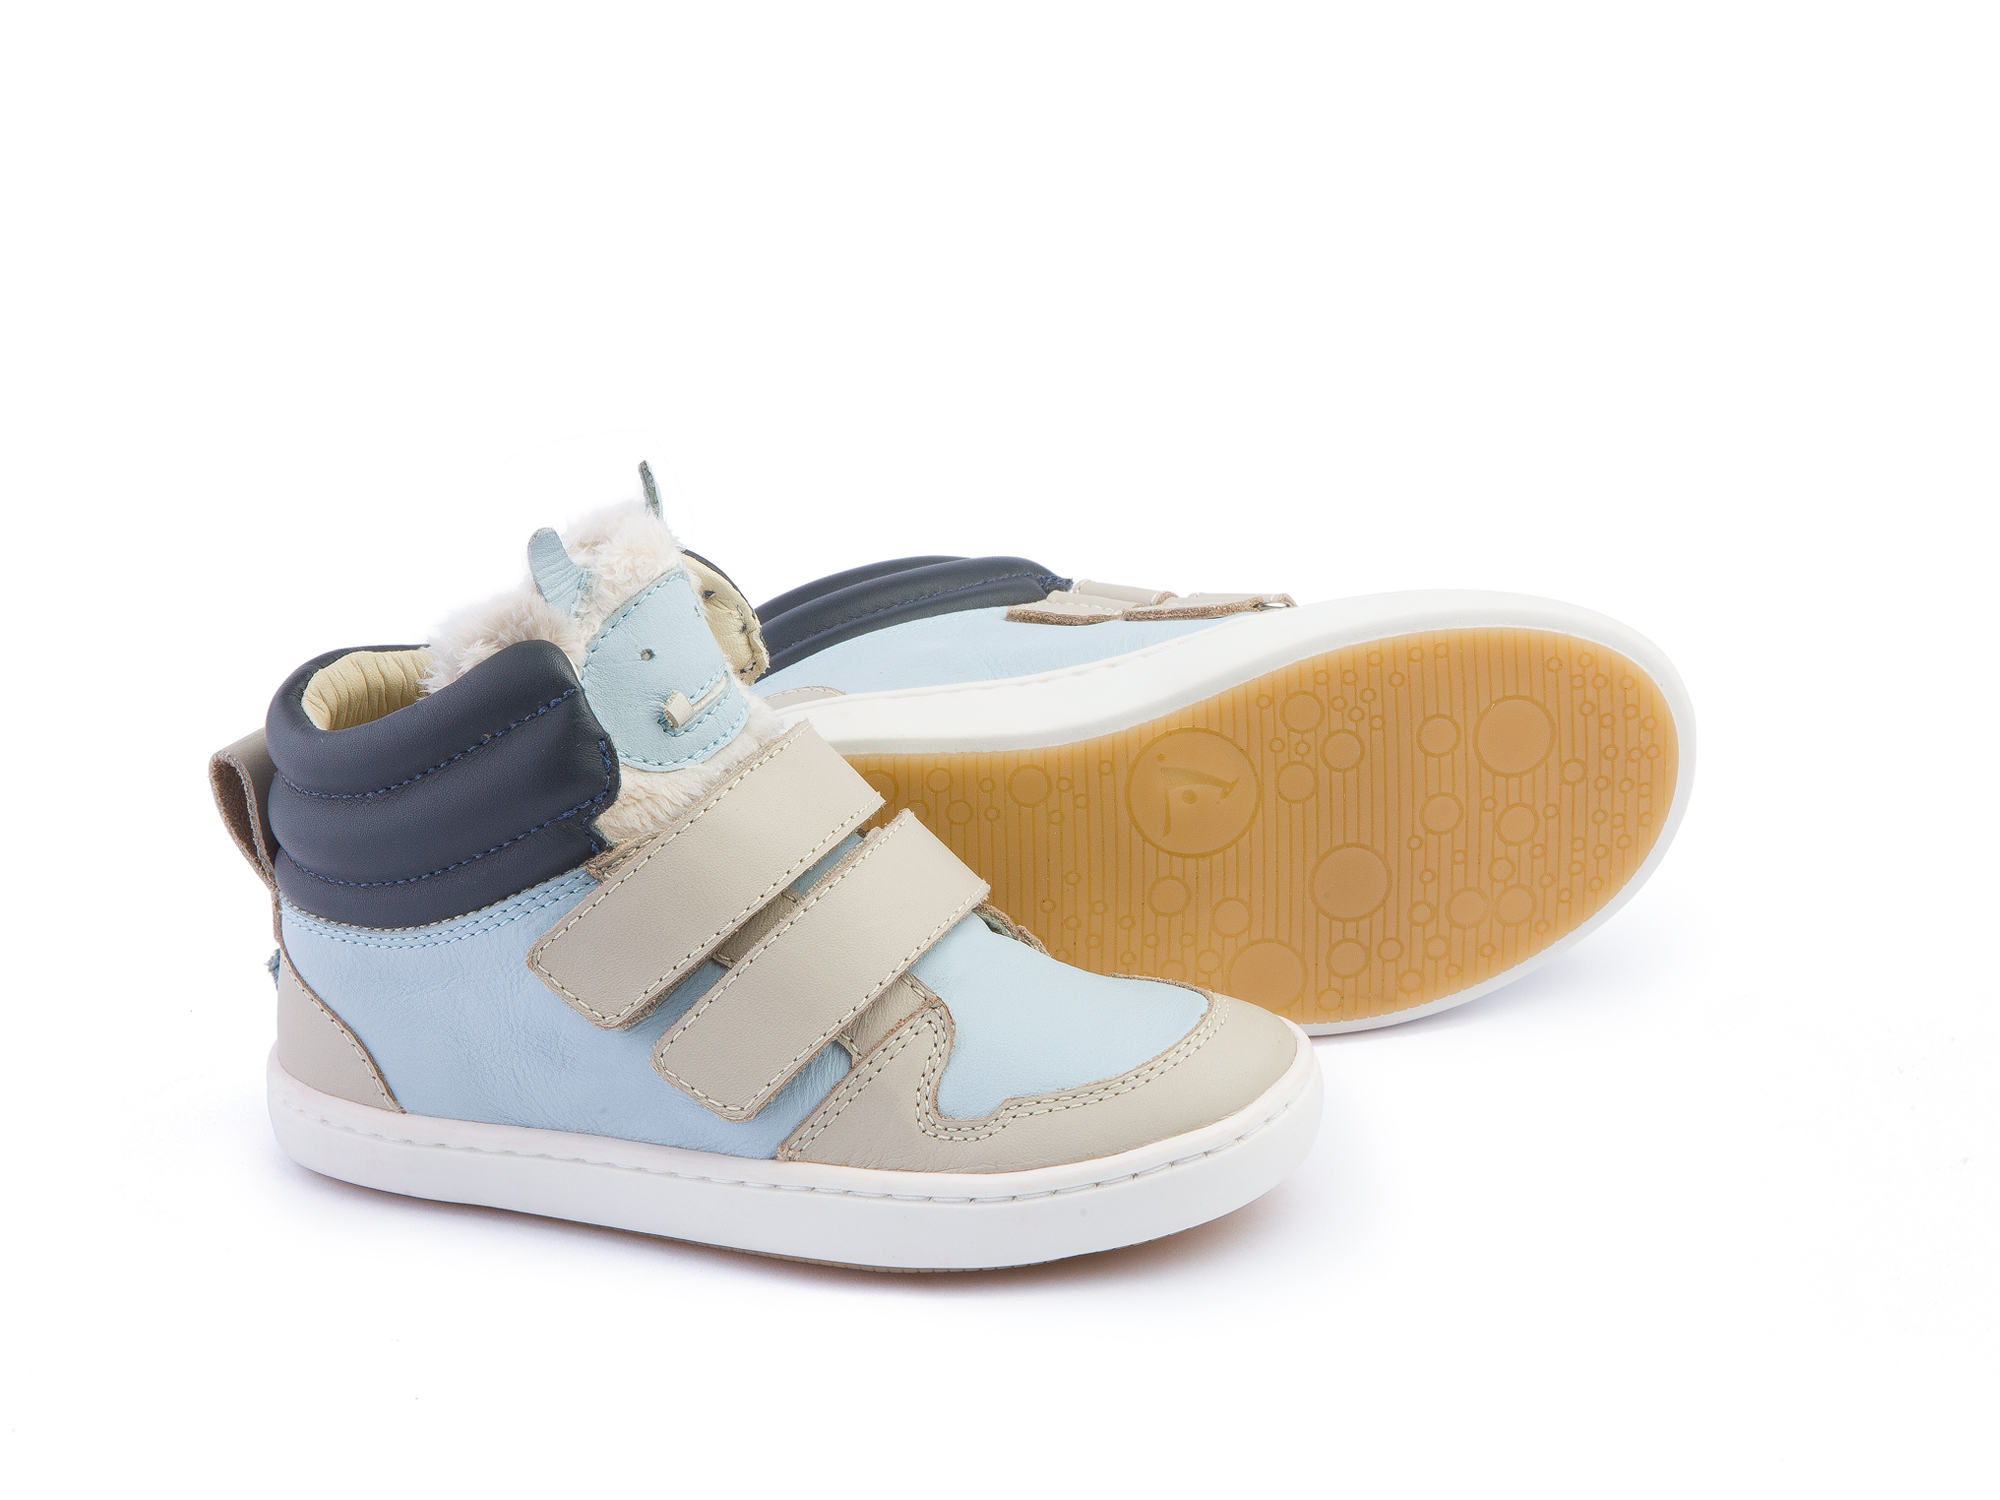 Bota Little Monster Pumice/ Baby Blue Toddler 2 à 4 anos - 2